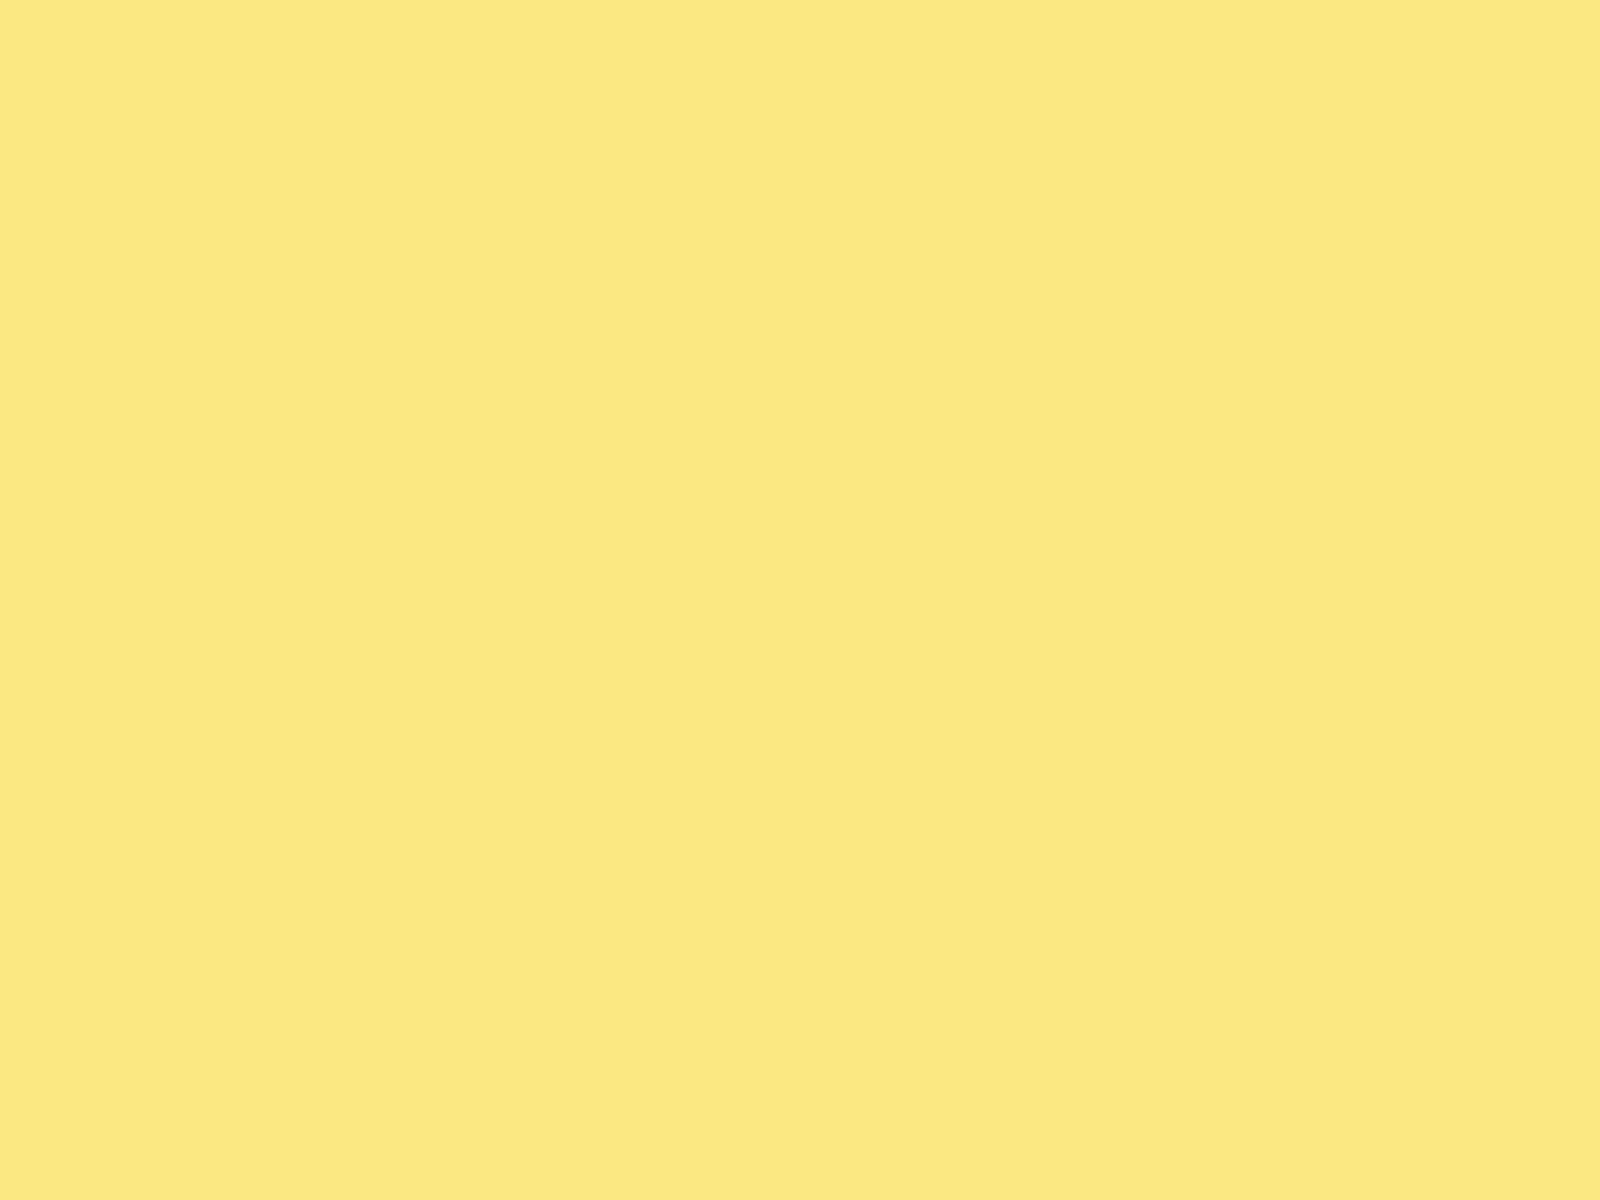 1600x1200 Yellow Crayola Solid Color Background